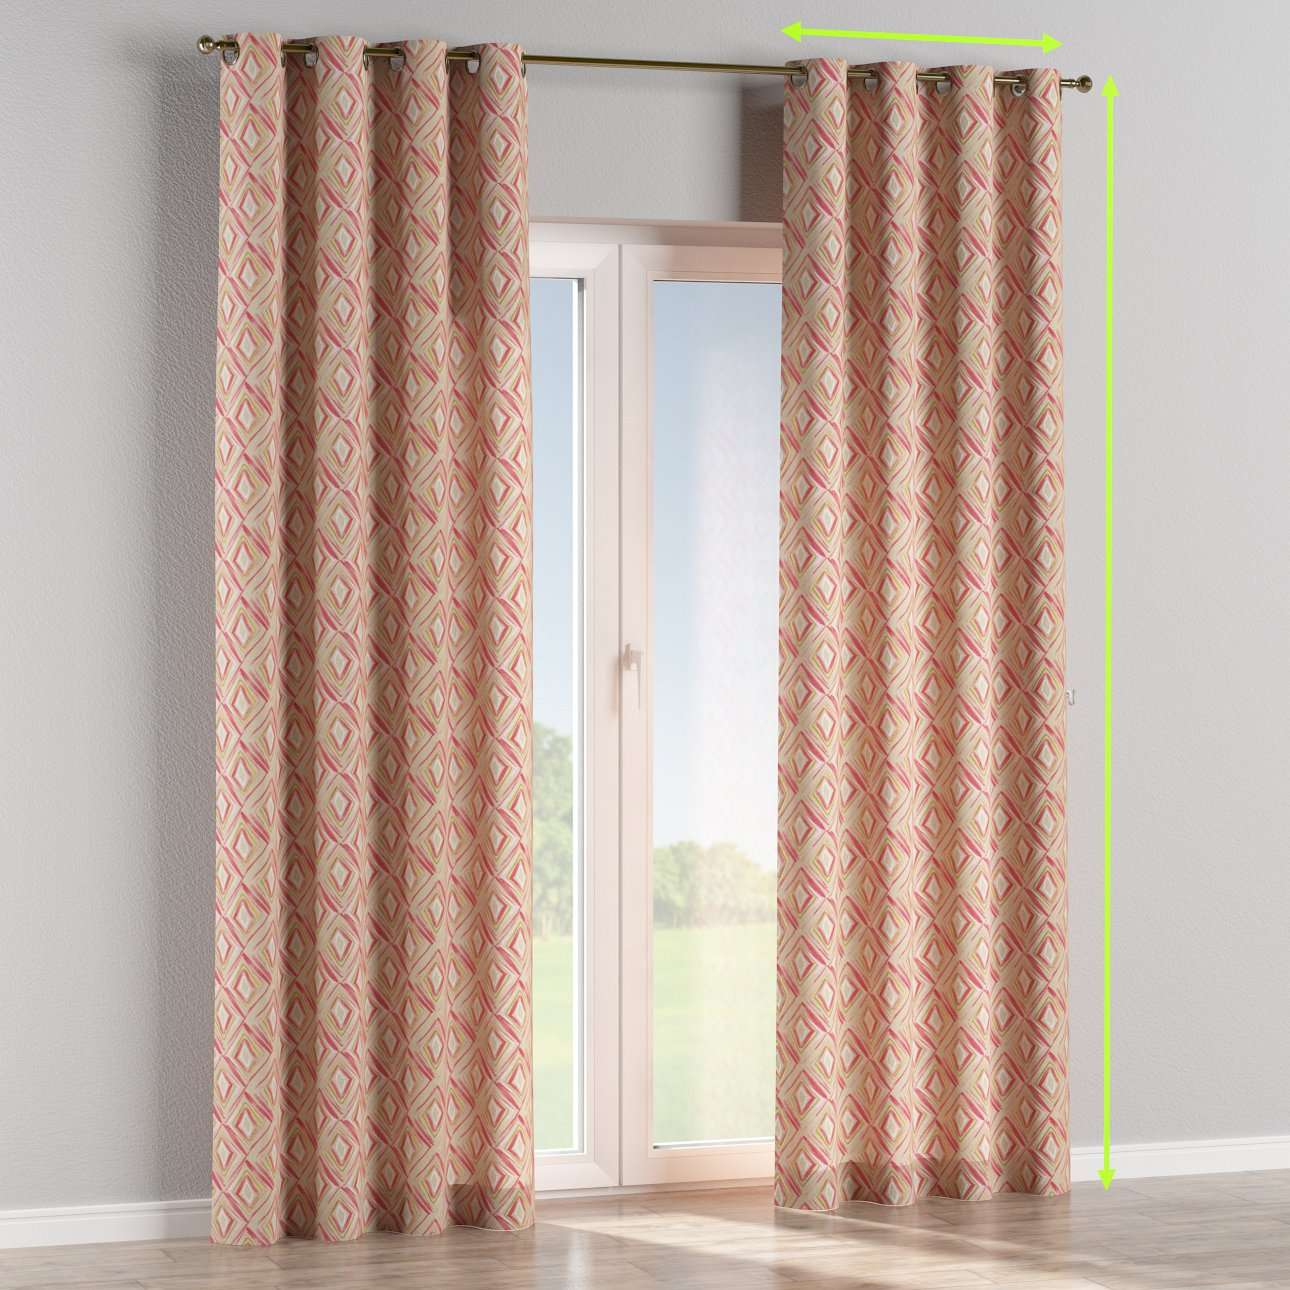 Eyelet curtains in collection Londres, fabric: 140-45